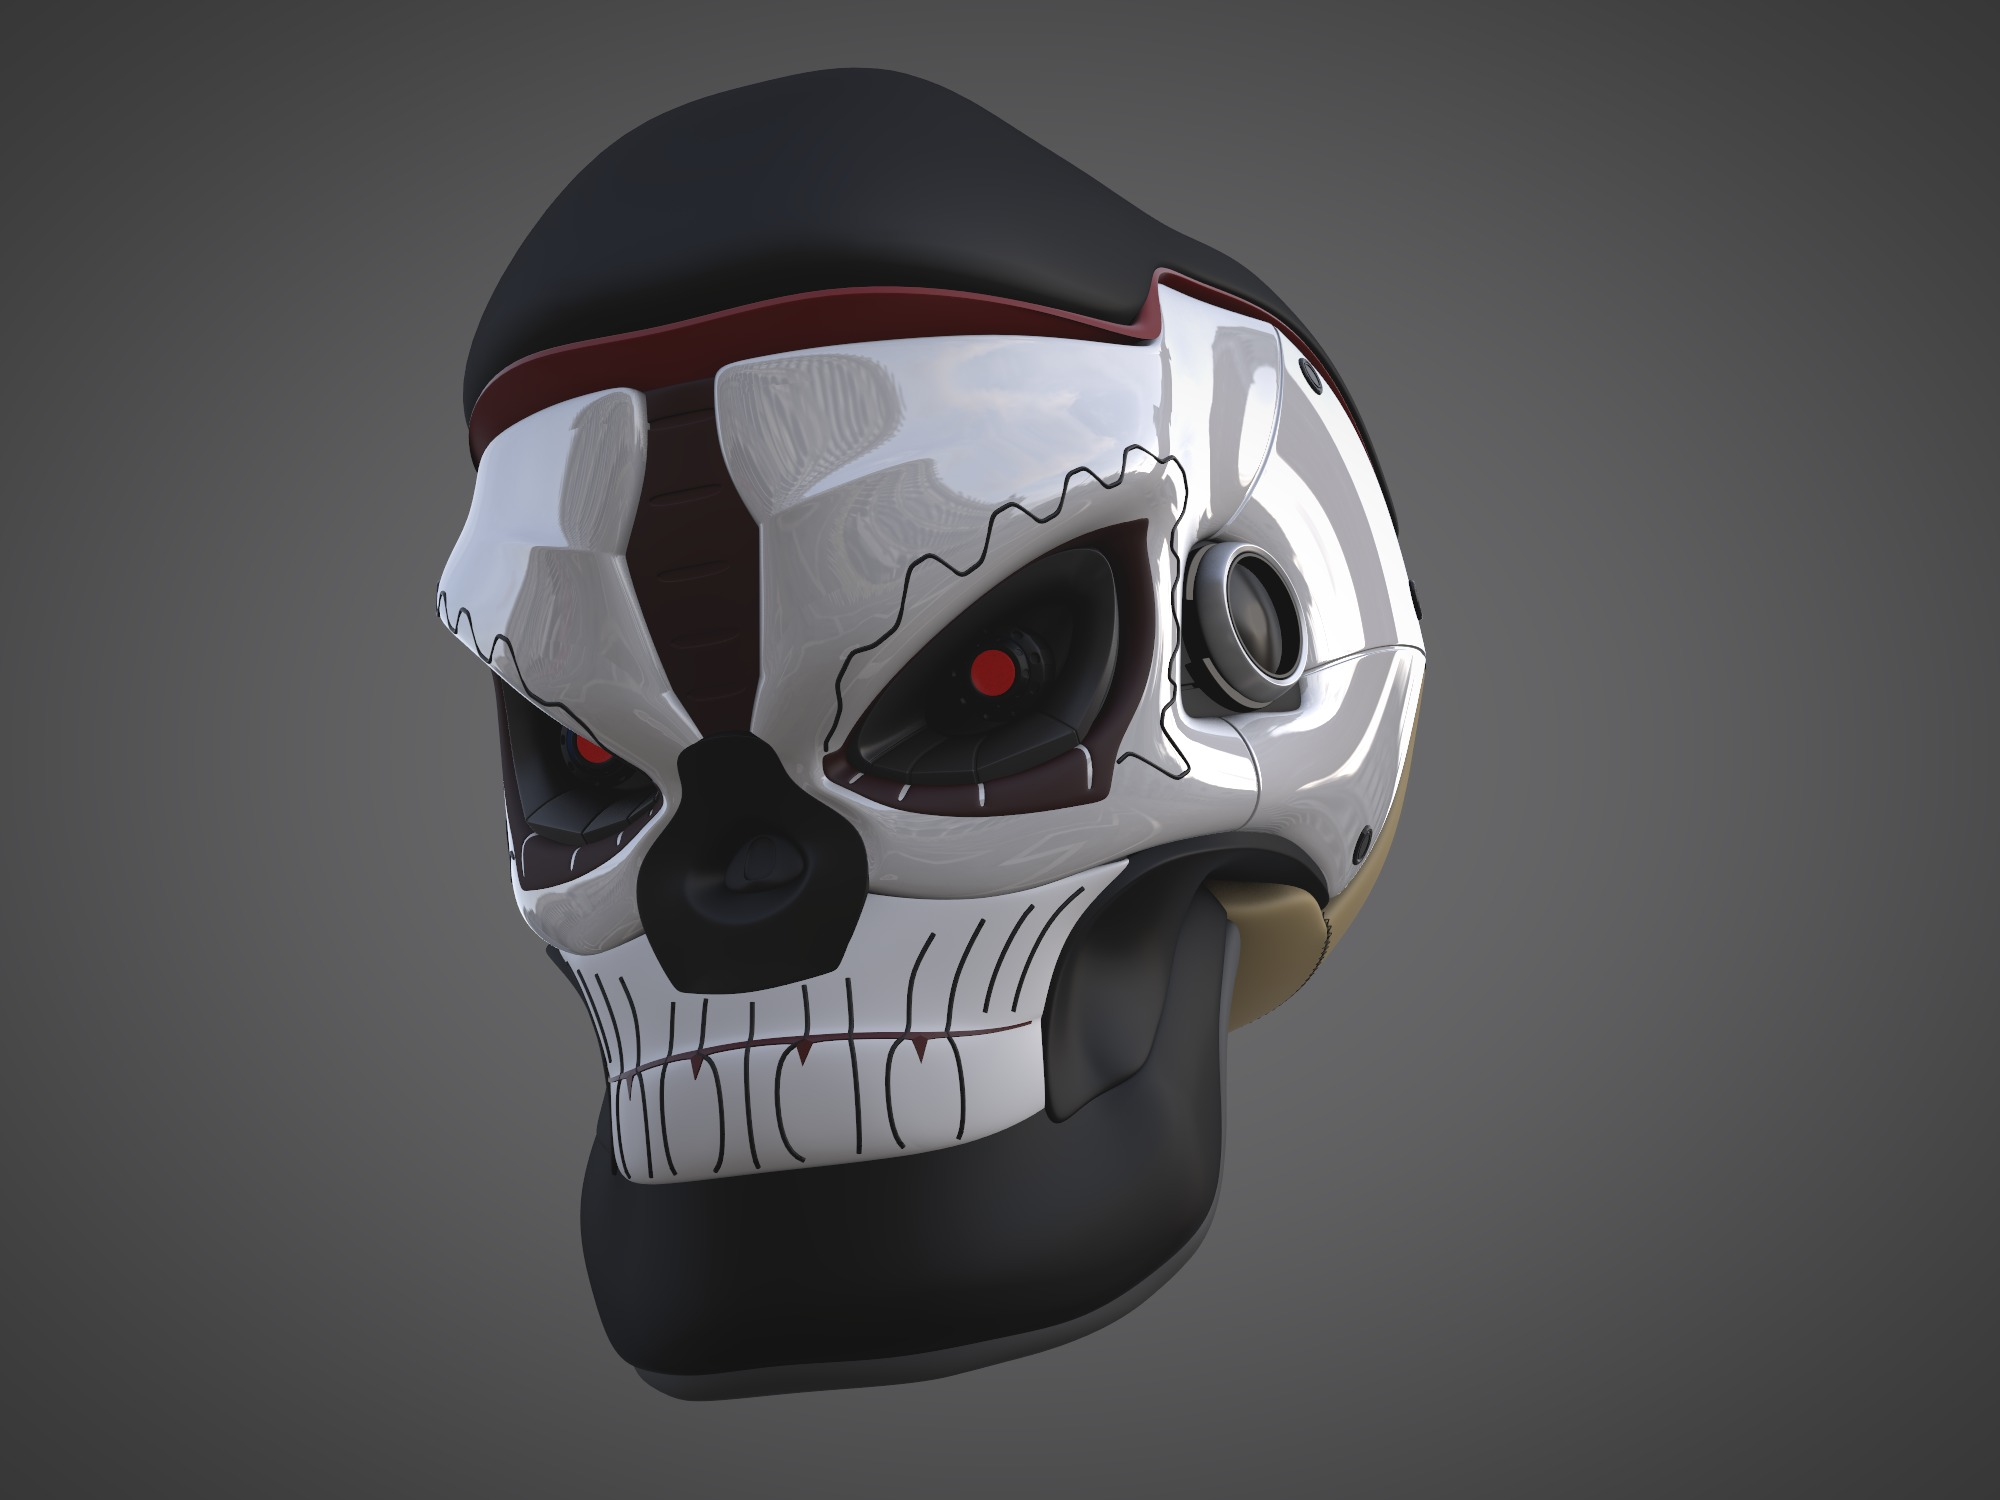 Tech Mex Skull - 3D design by matt_one on Oct 26, 2016